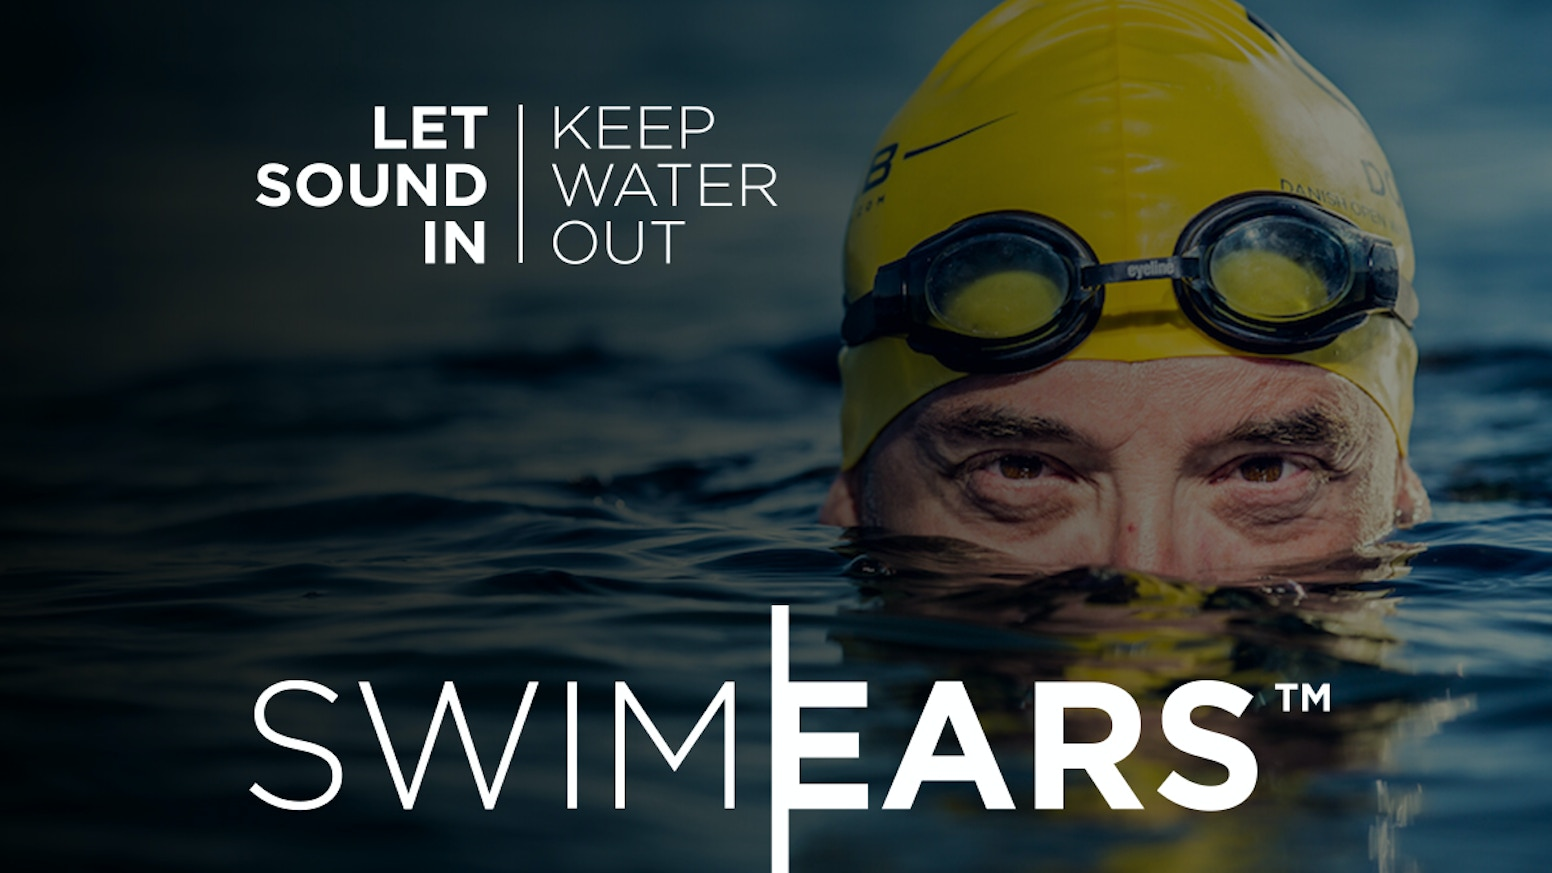 Designed for swimmers & triathletes, SwimEars™ ear plugs protect your ears without affecting your hearing.